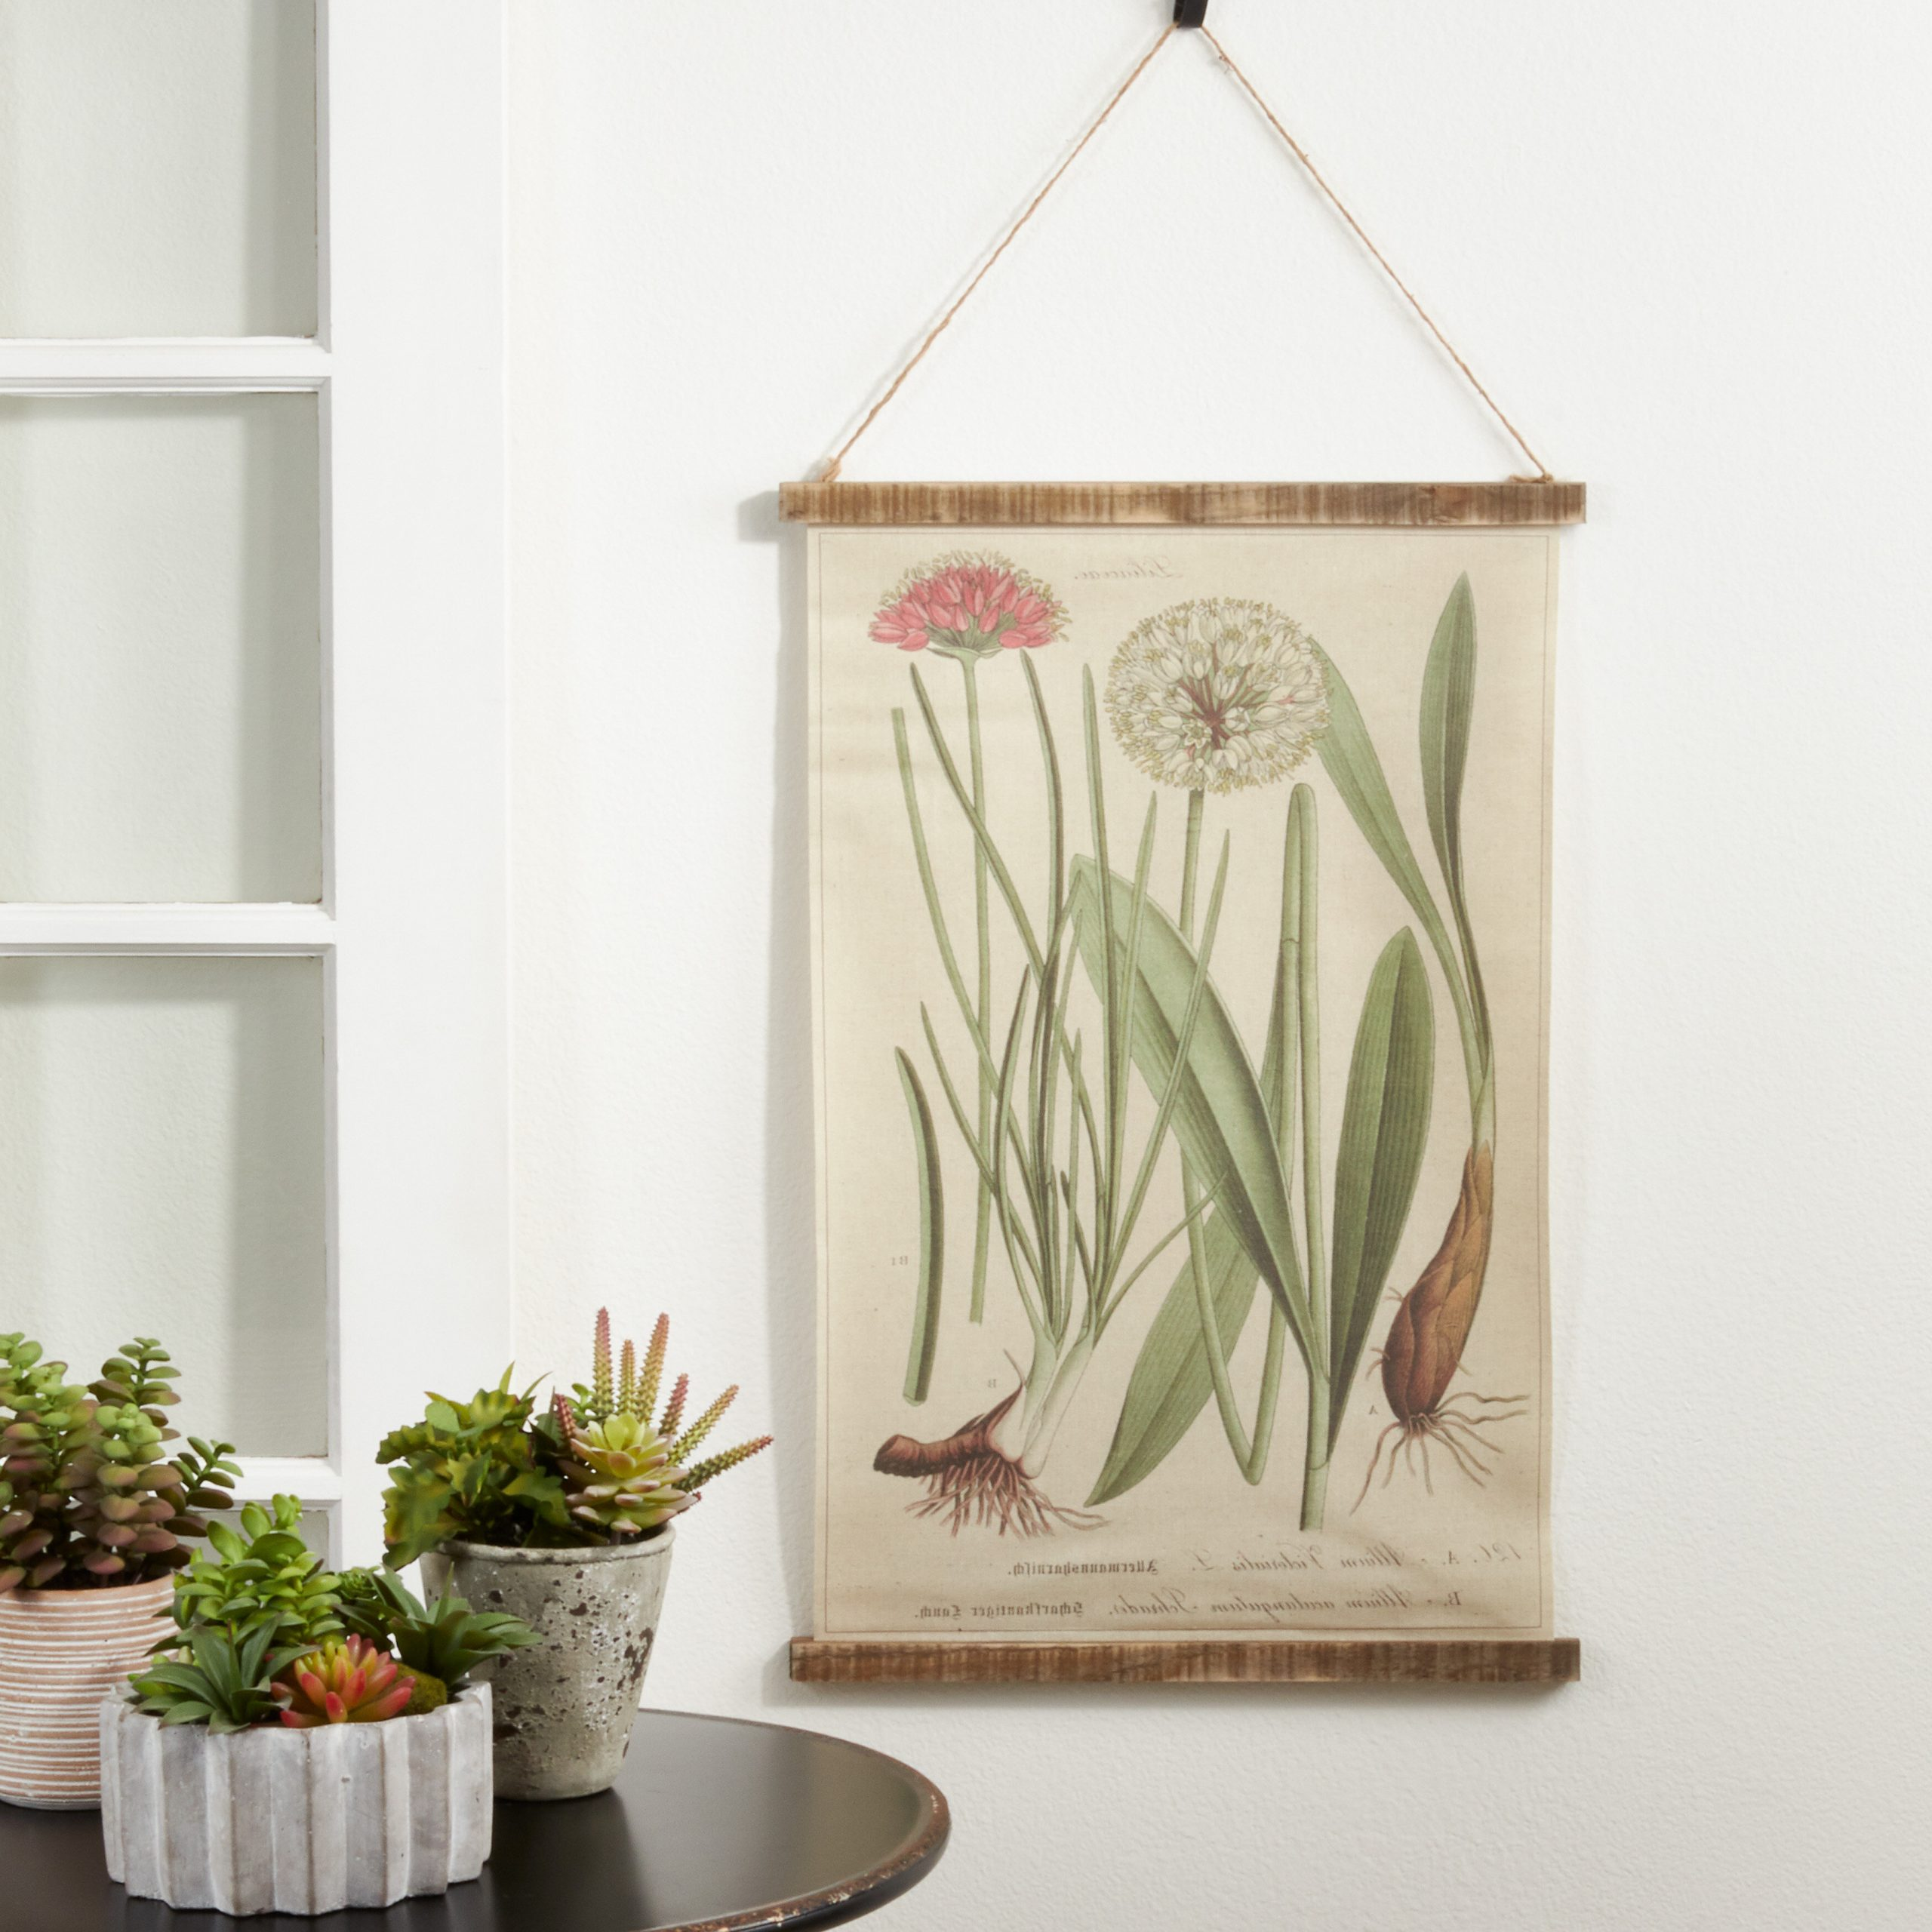 Well Liked Blended Fabric Clancy Wool And Cotton Wall Hangings With Hanging Accessories Included For Linen Botanical Design With Rod Included (View 11 of 20)